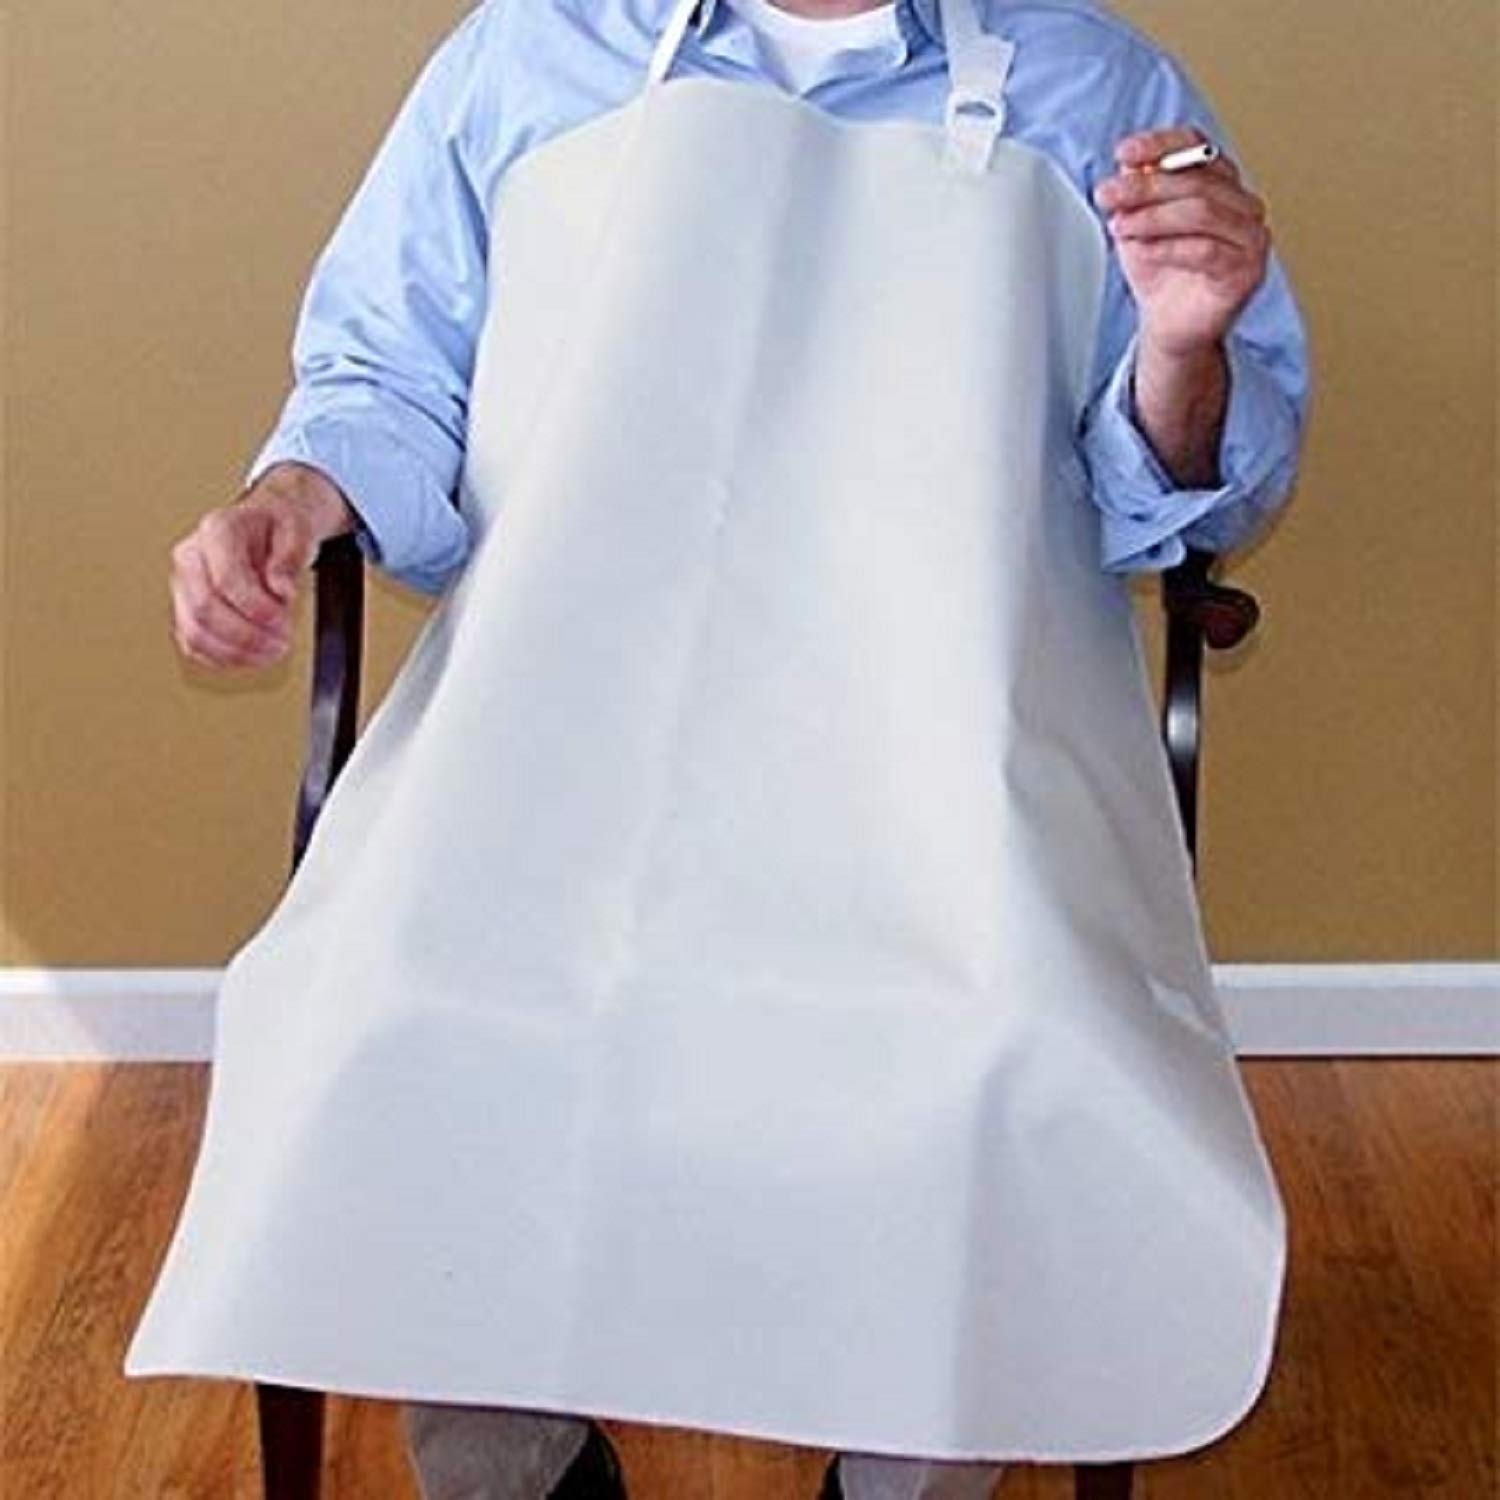 NYOrtho Smoker's Apron, X-Long White - Oversized for Geri-Chair